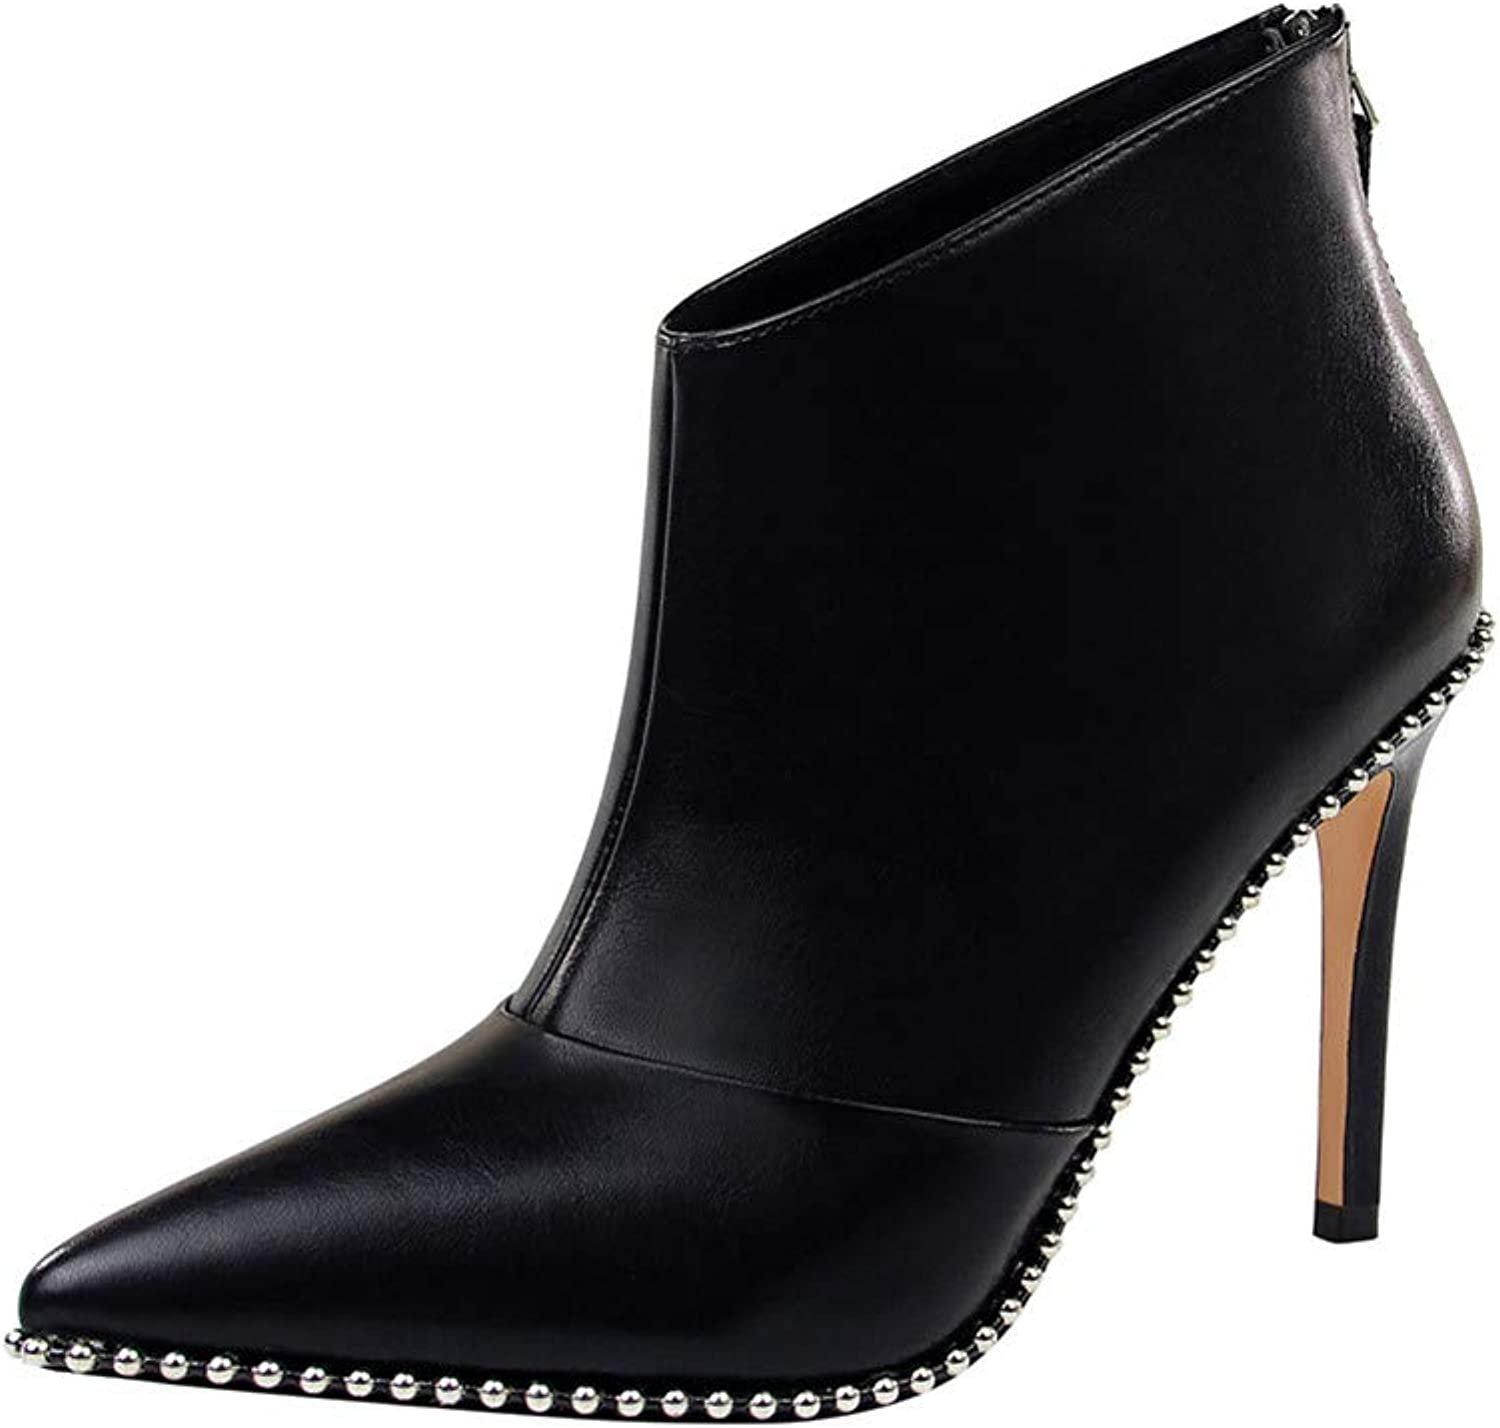 MMJULY Women's Pointed Toe Zip Up Stiletto High Heels Dress Ankle Booties